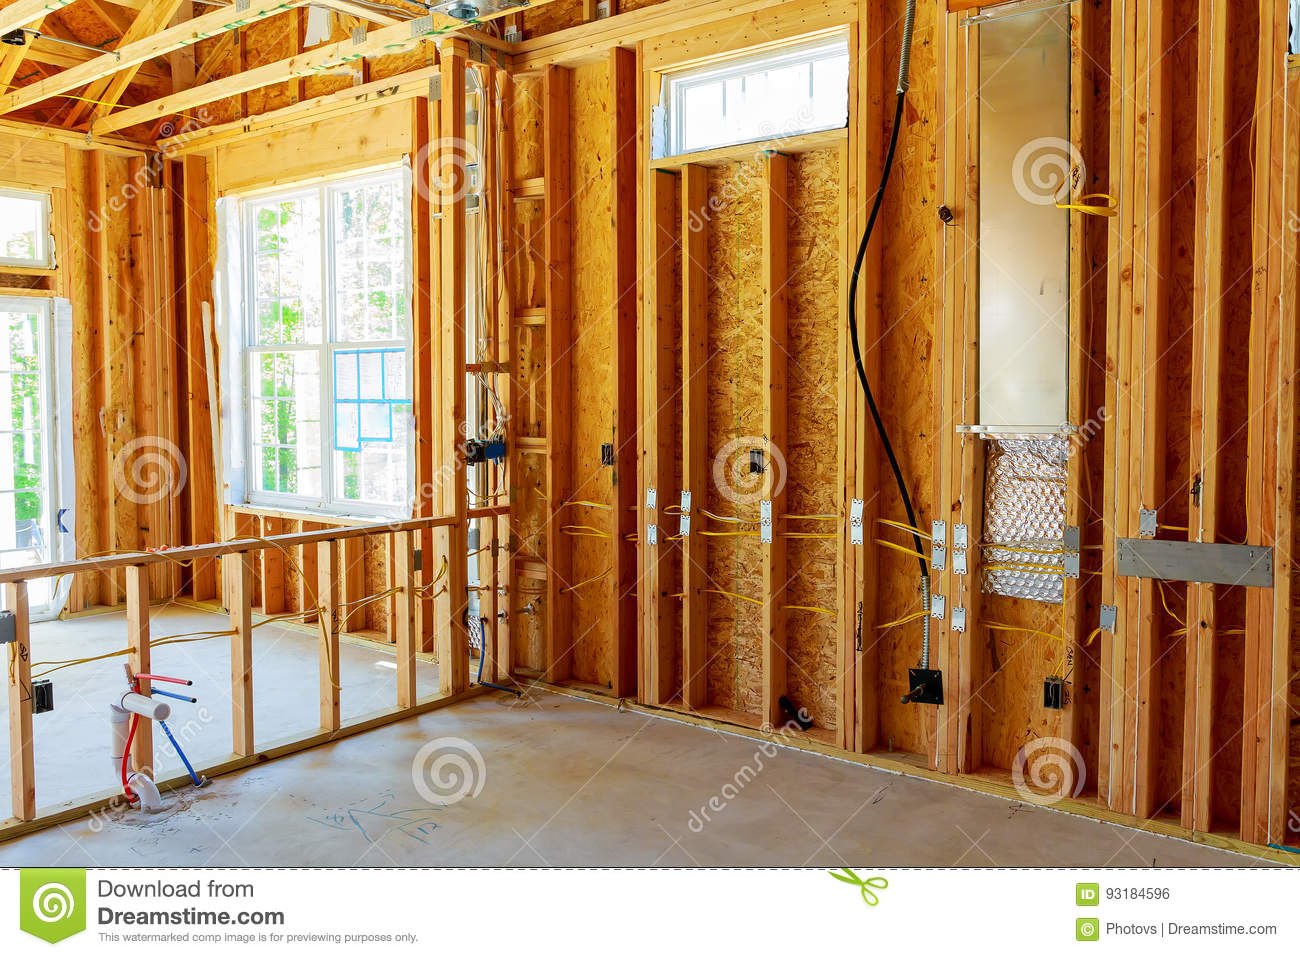 Wiring House Frame Circuits Symbols Diagrams How To Wire A For Electricity The Building Or With Basic Electrical Stock Photo Rh Dreamstime Com